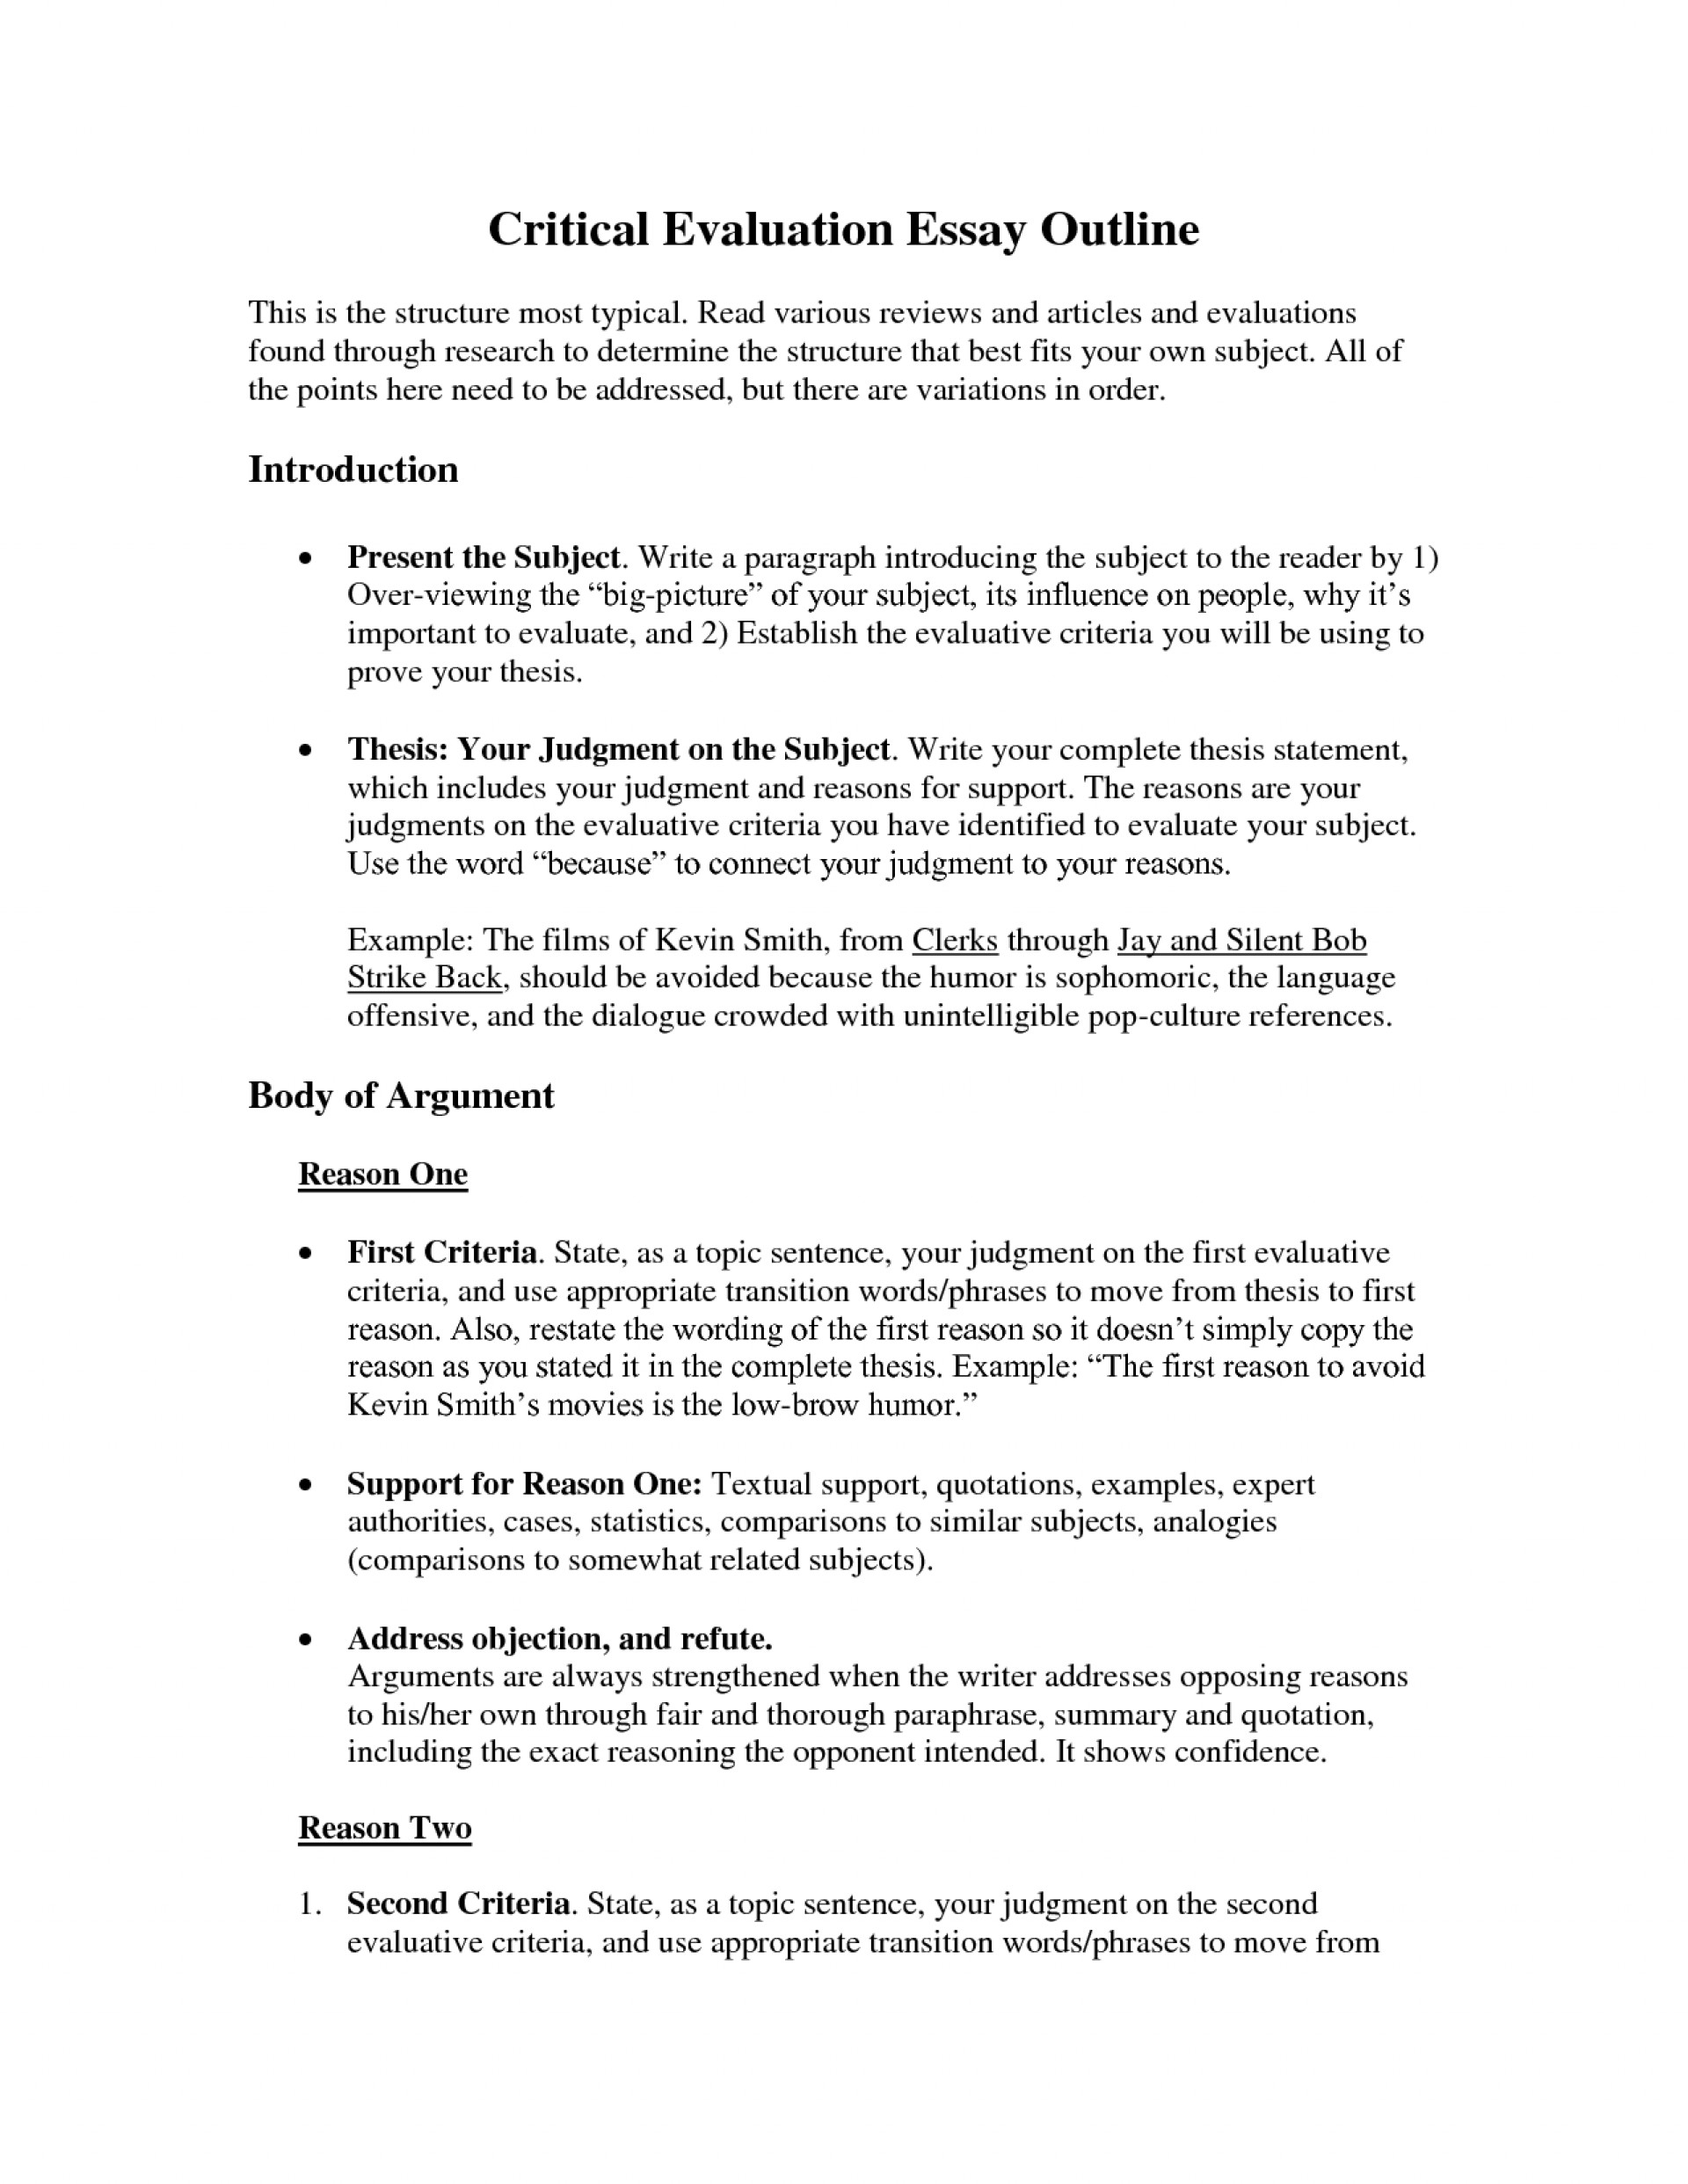 018 How To Write An Evaluation Essay Critical Example Sample L Outstanding A Self Psychology On Product 1920